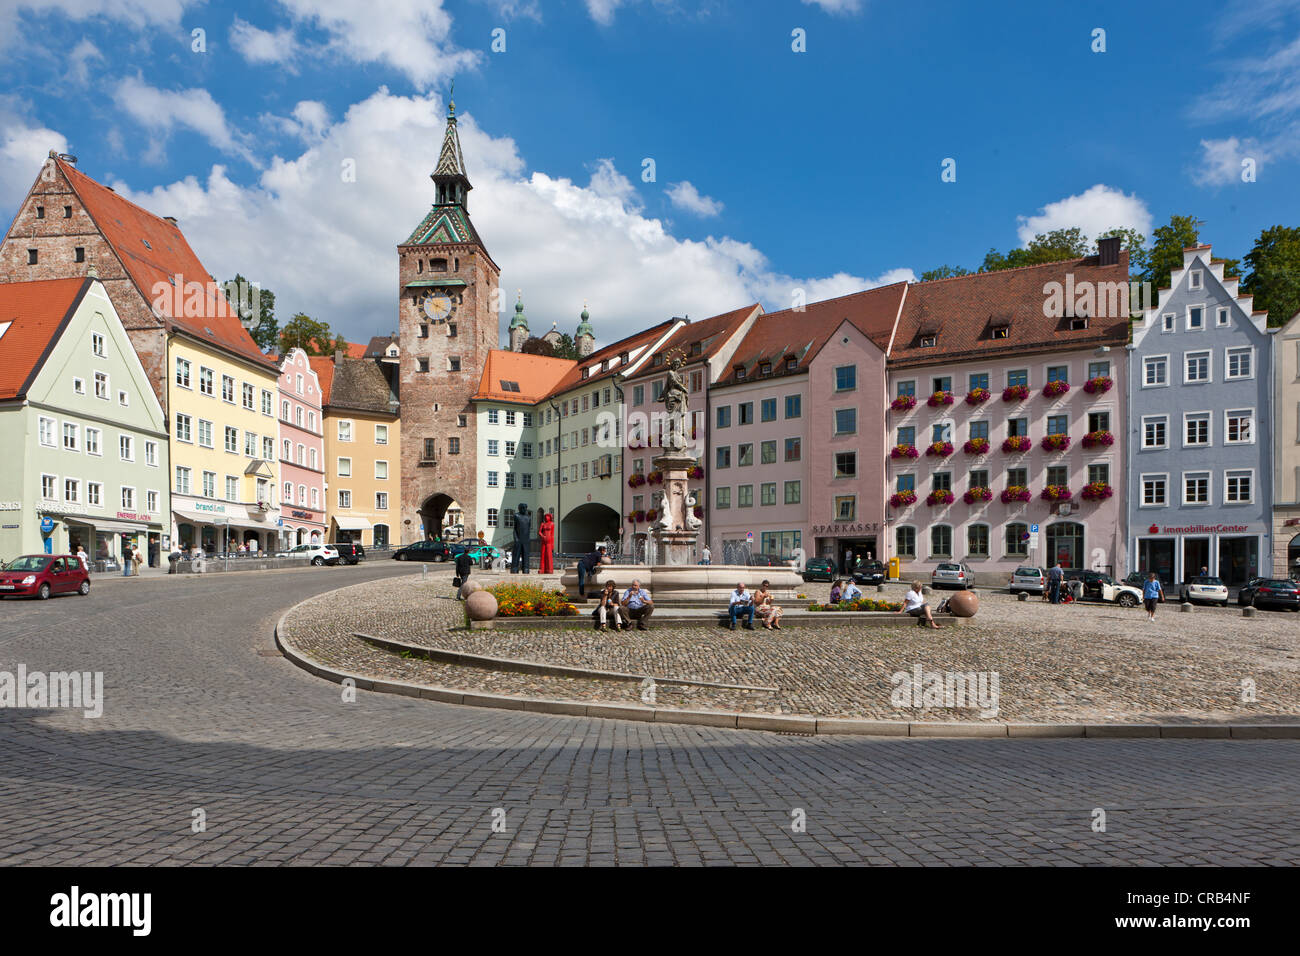 hauptplatz square marienbrunnen fountain and schmalzturm tower stock photo 48803035 alamy. Black Bedroom Furniture Sets. Home Design Ideas